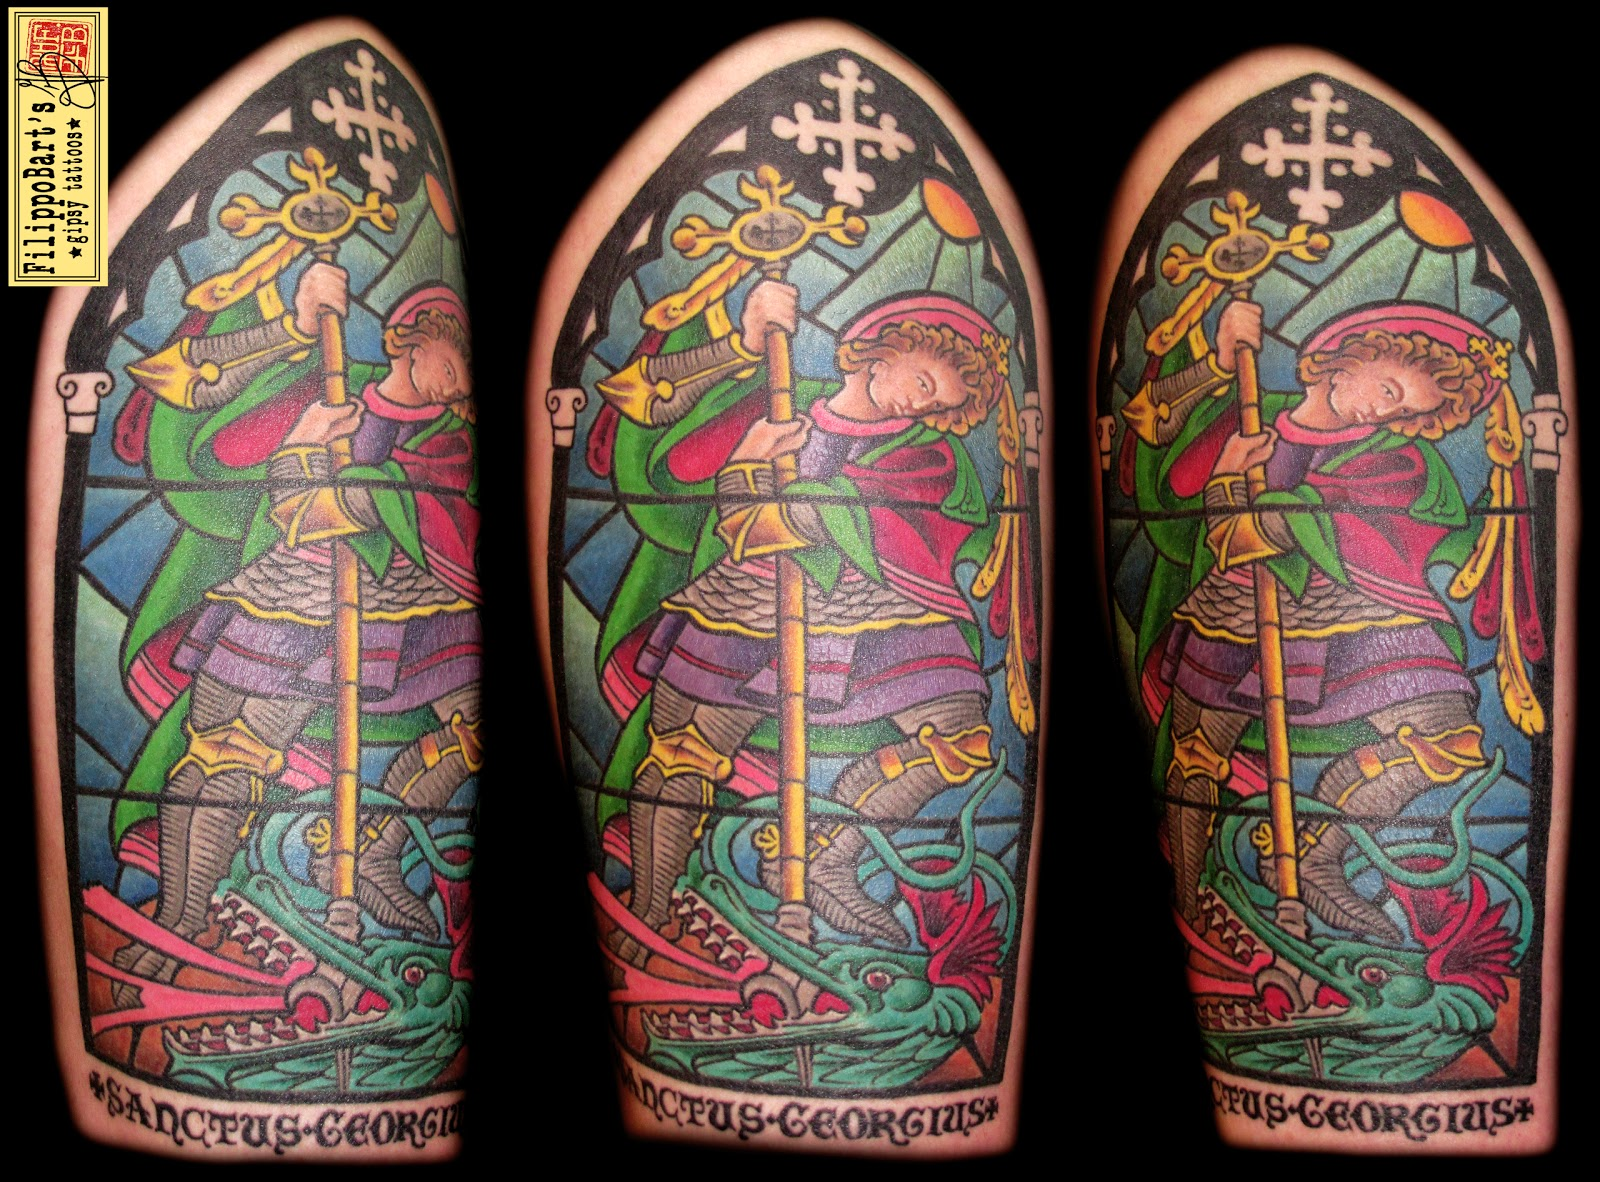 Stained Glass Back Tattoo The gipsy caravan tattoo